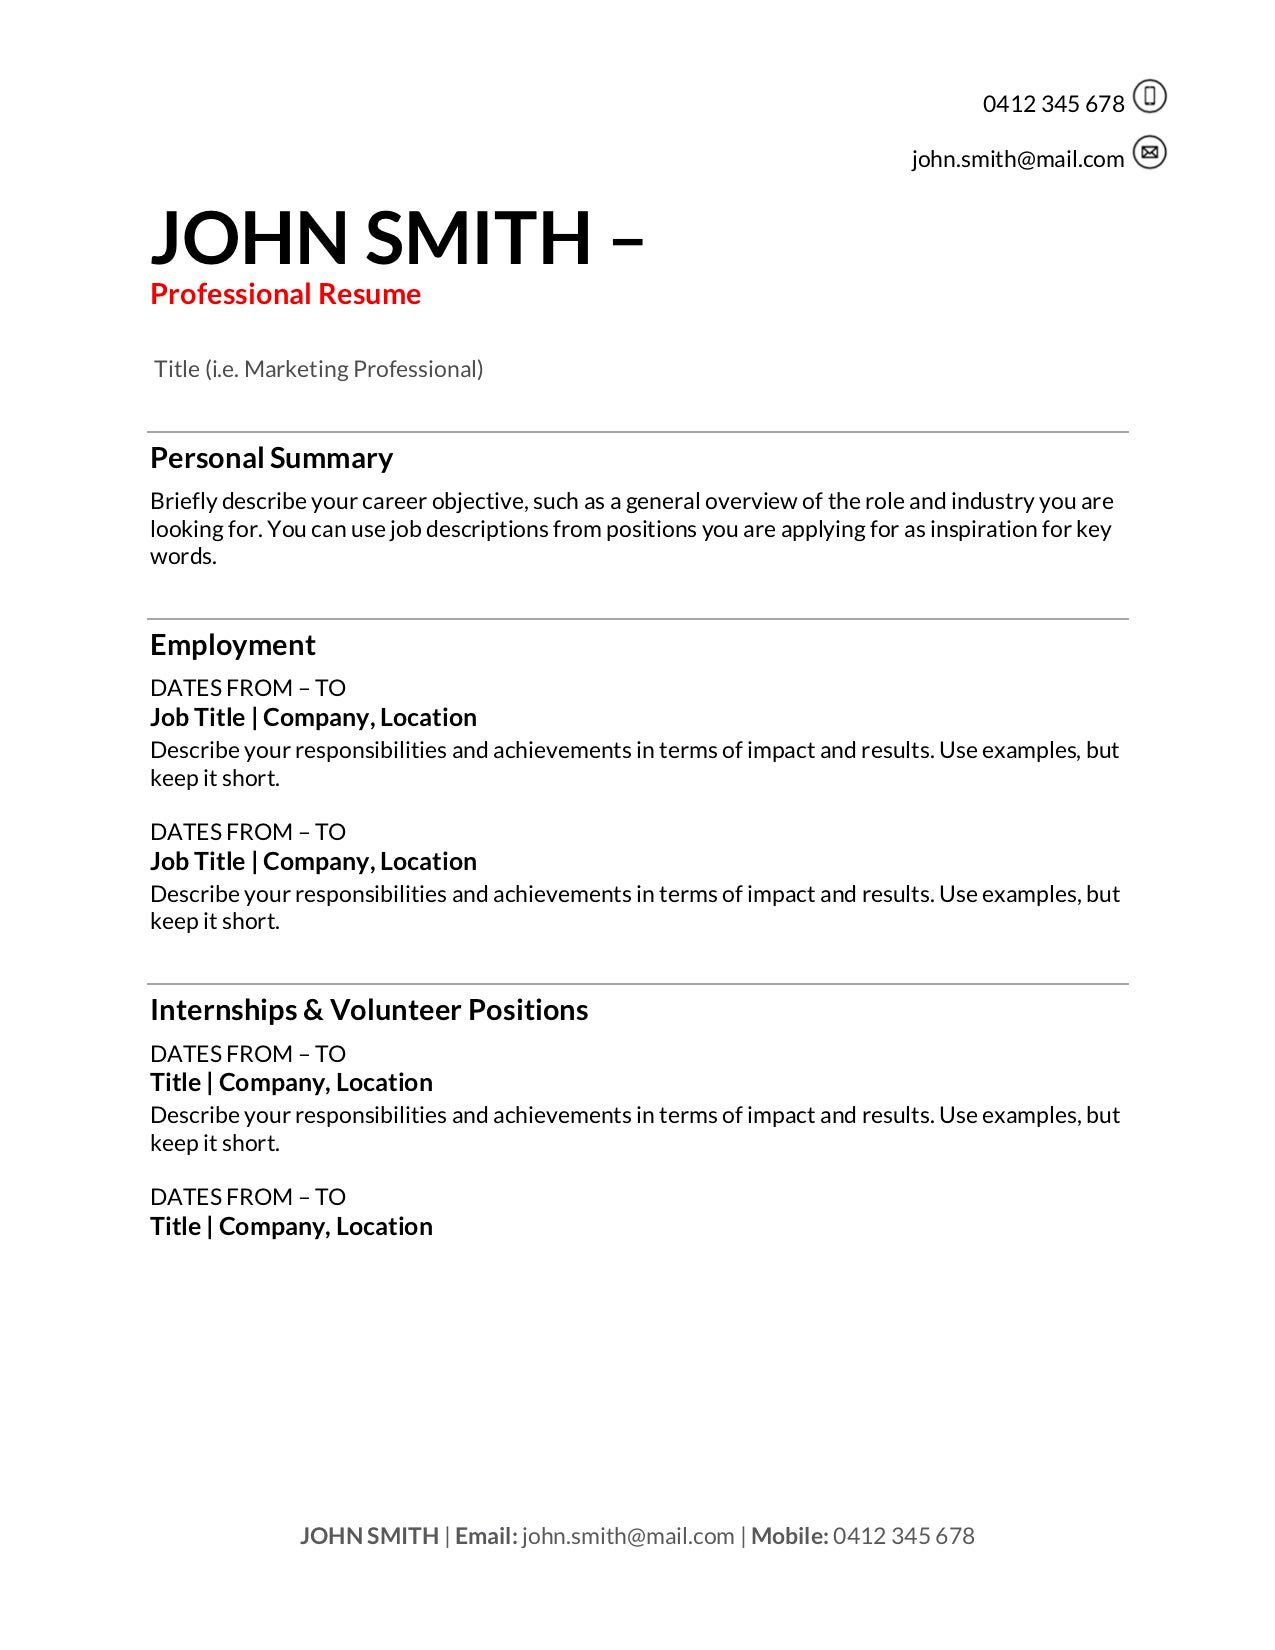 006 Impressive Resume Template For First Job High Def  Student Australia In School TeenagerFull